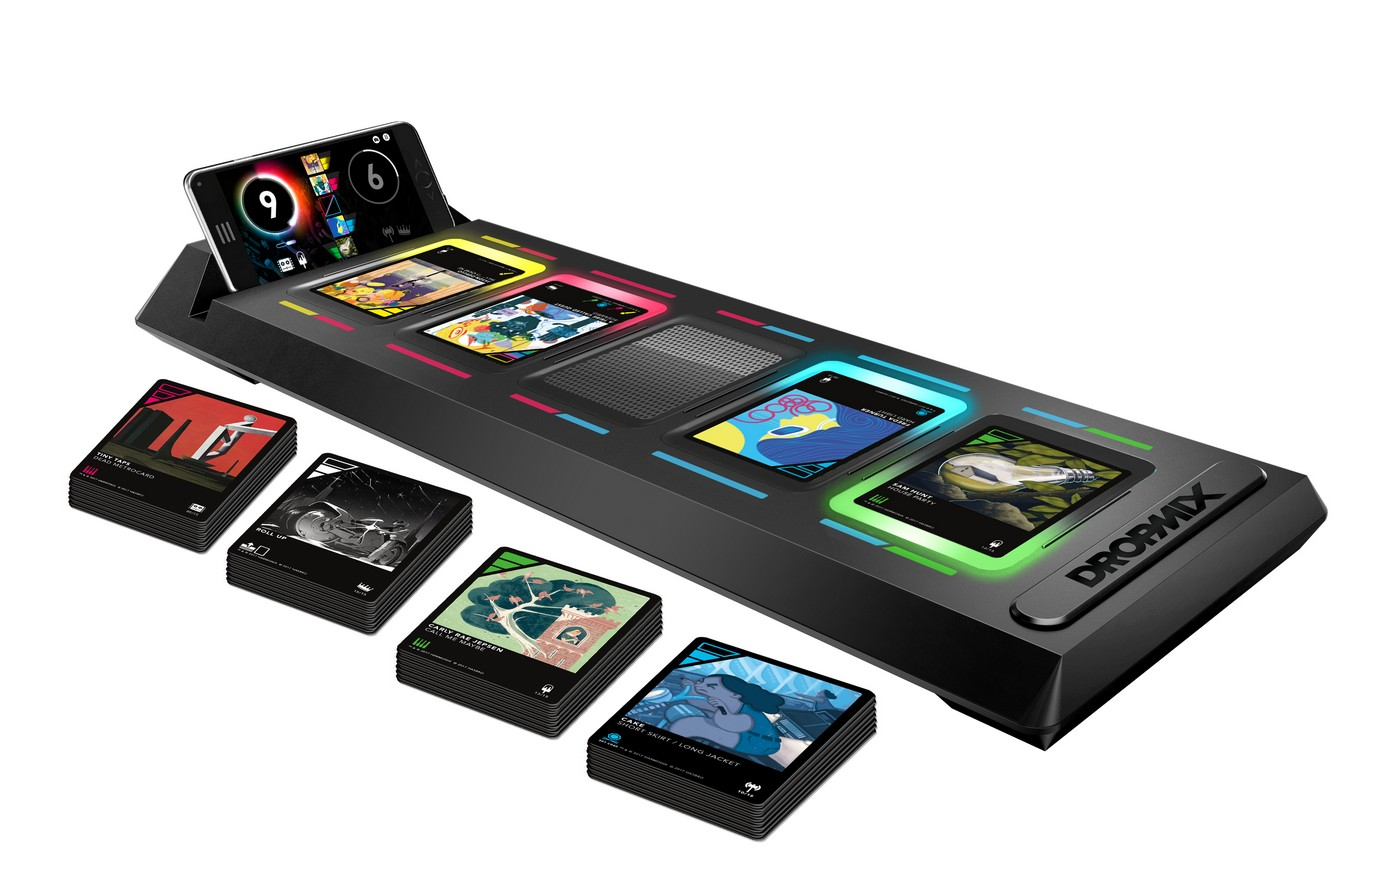 Harmonix collaborates with Hasbro on a new card-based music game